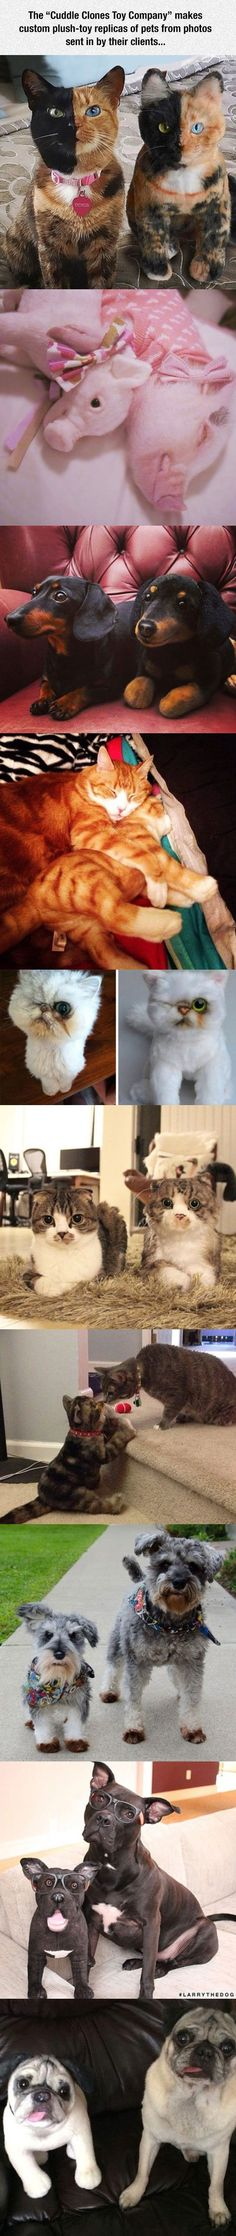 """The """"Cuddle Clones Toy Company"""" create custom stuffed animals of your special pet and offer a variety of unique pet gifts, all you need to do is to send them one photos of your pets. Here is the link: Cuddle Clones OMG!"""